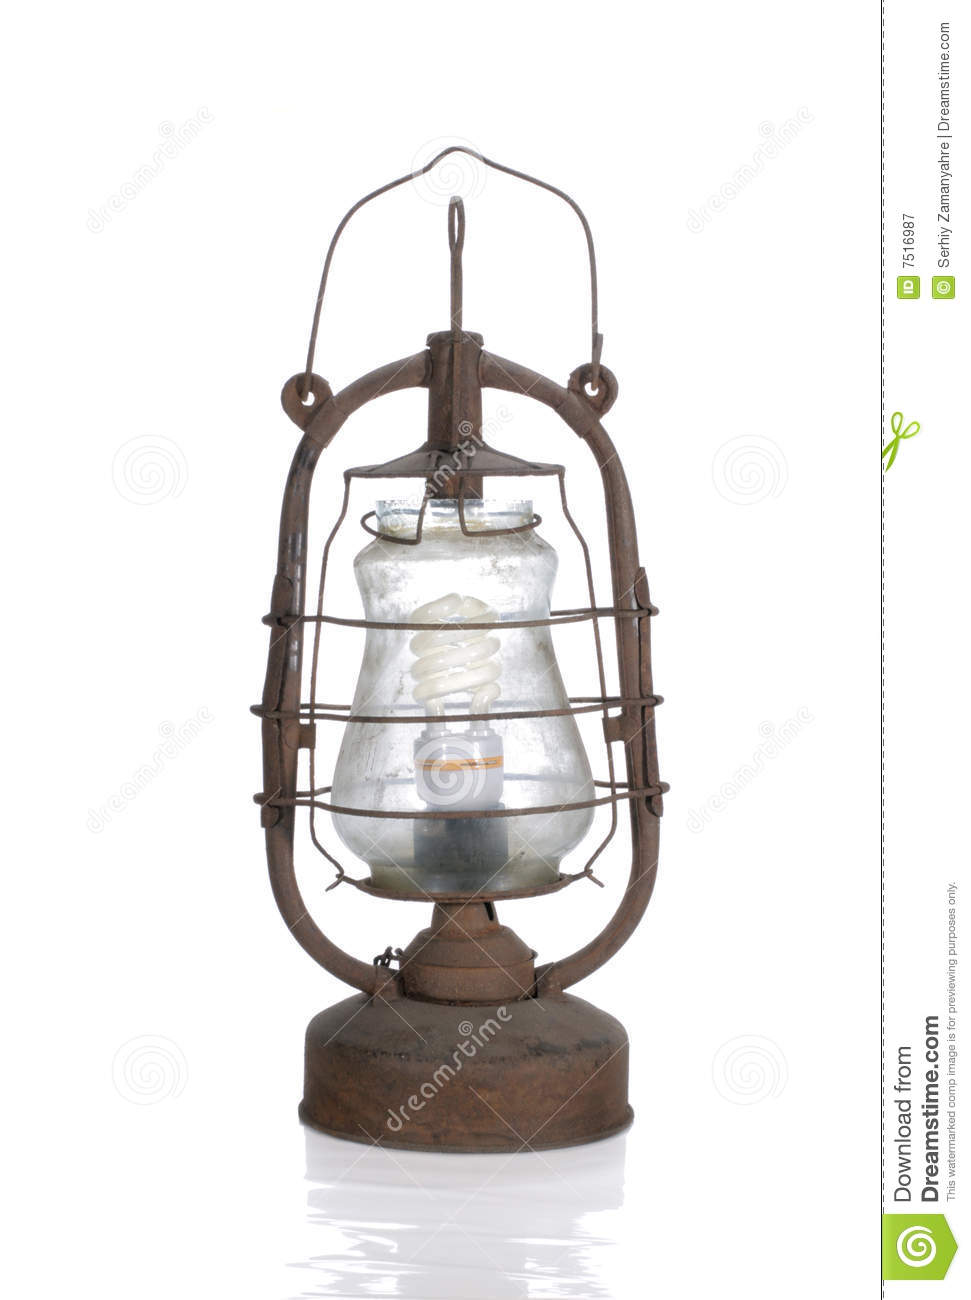 Modern Kerosene Lamp The Old Dirty Kerosene Lamp With Modern Bulb Stock Image Image